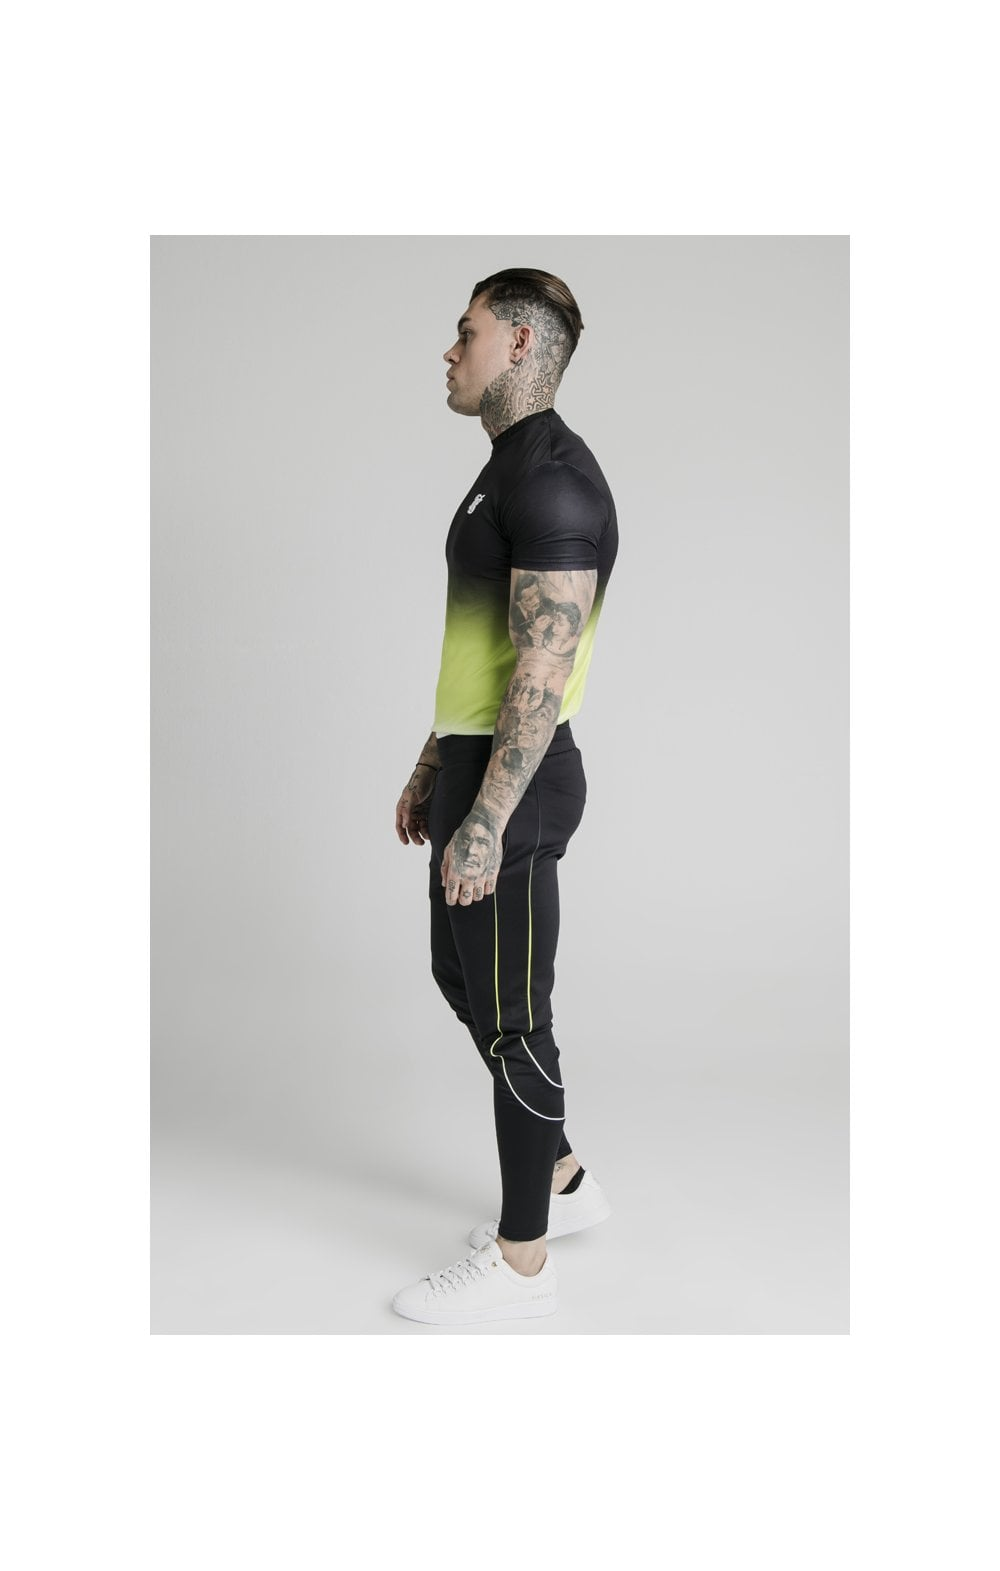 Load image into Gallery viewer, SikSilk Tri Fade Tape Track Pants - Black, Fluro & White (5)